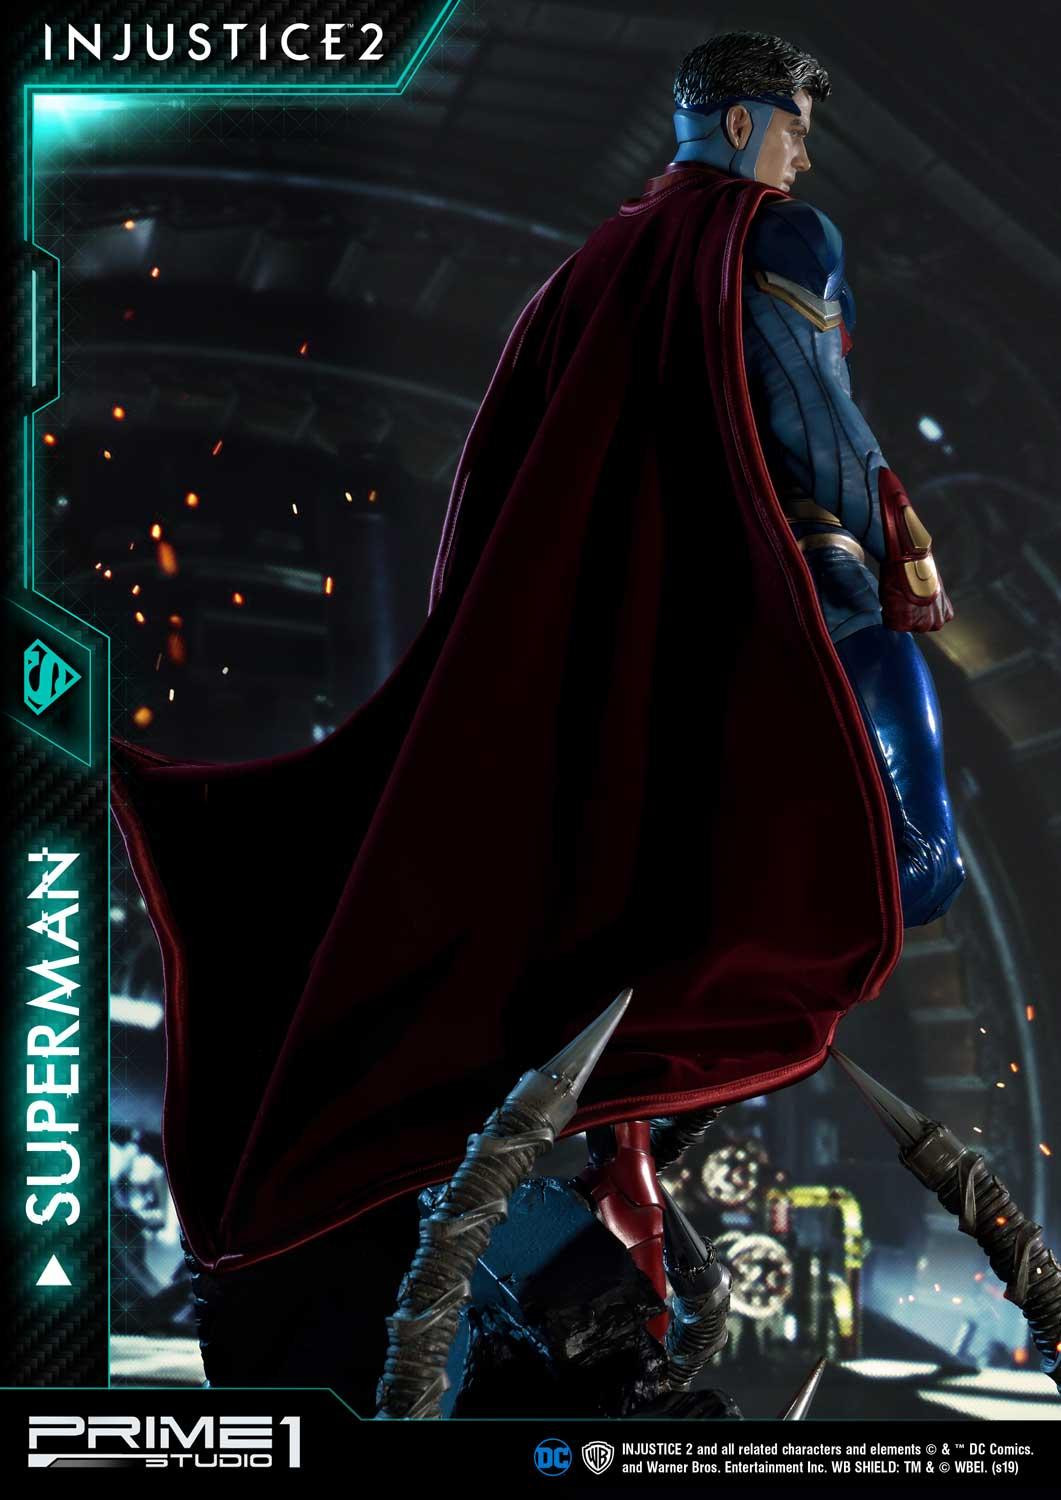 Premium Masterline Injustice 2 Superman By Prime 1 Studio